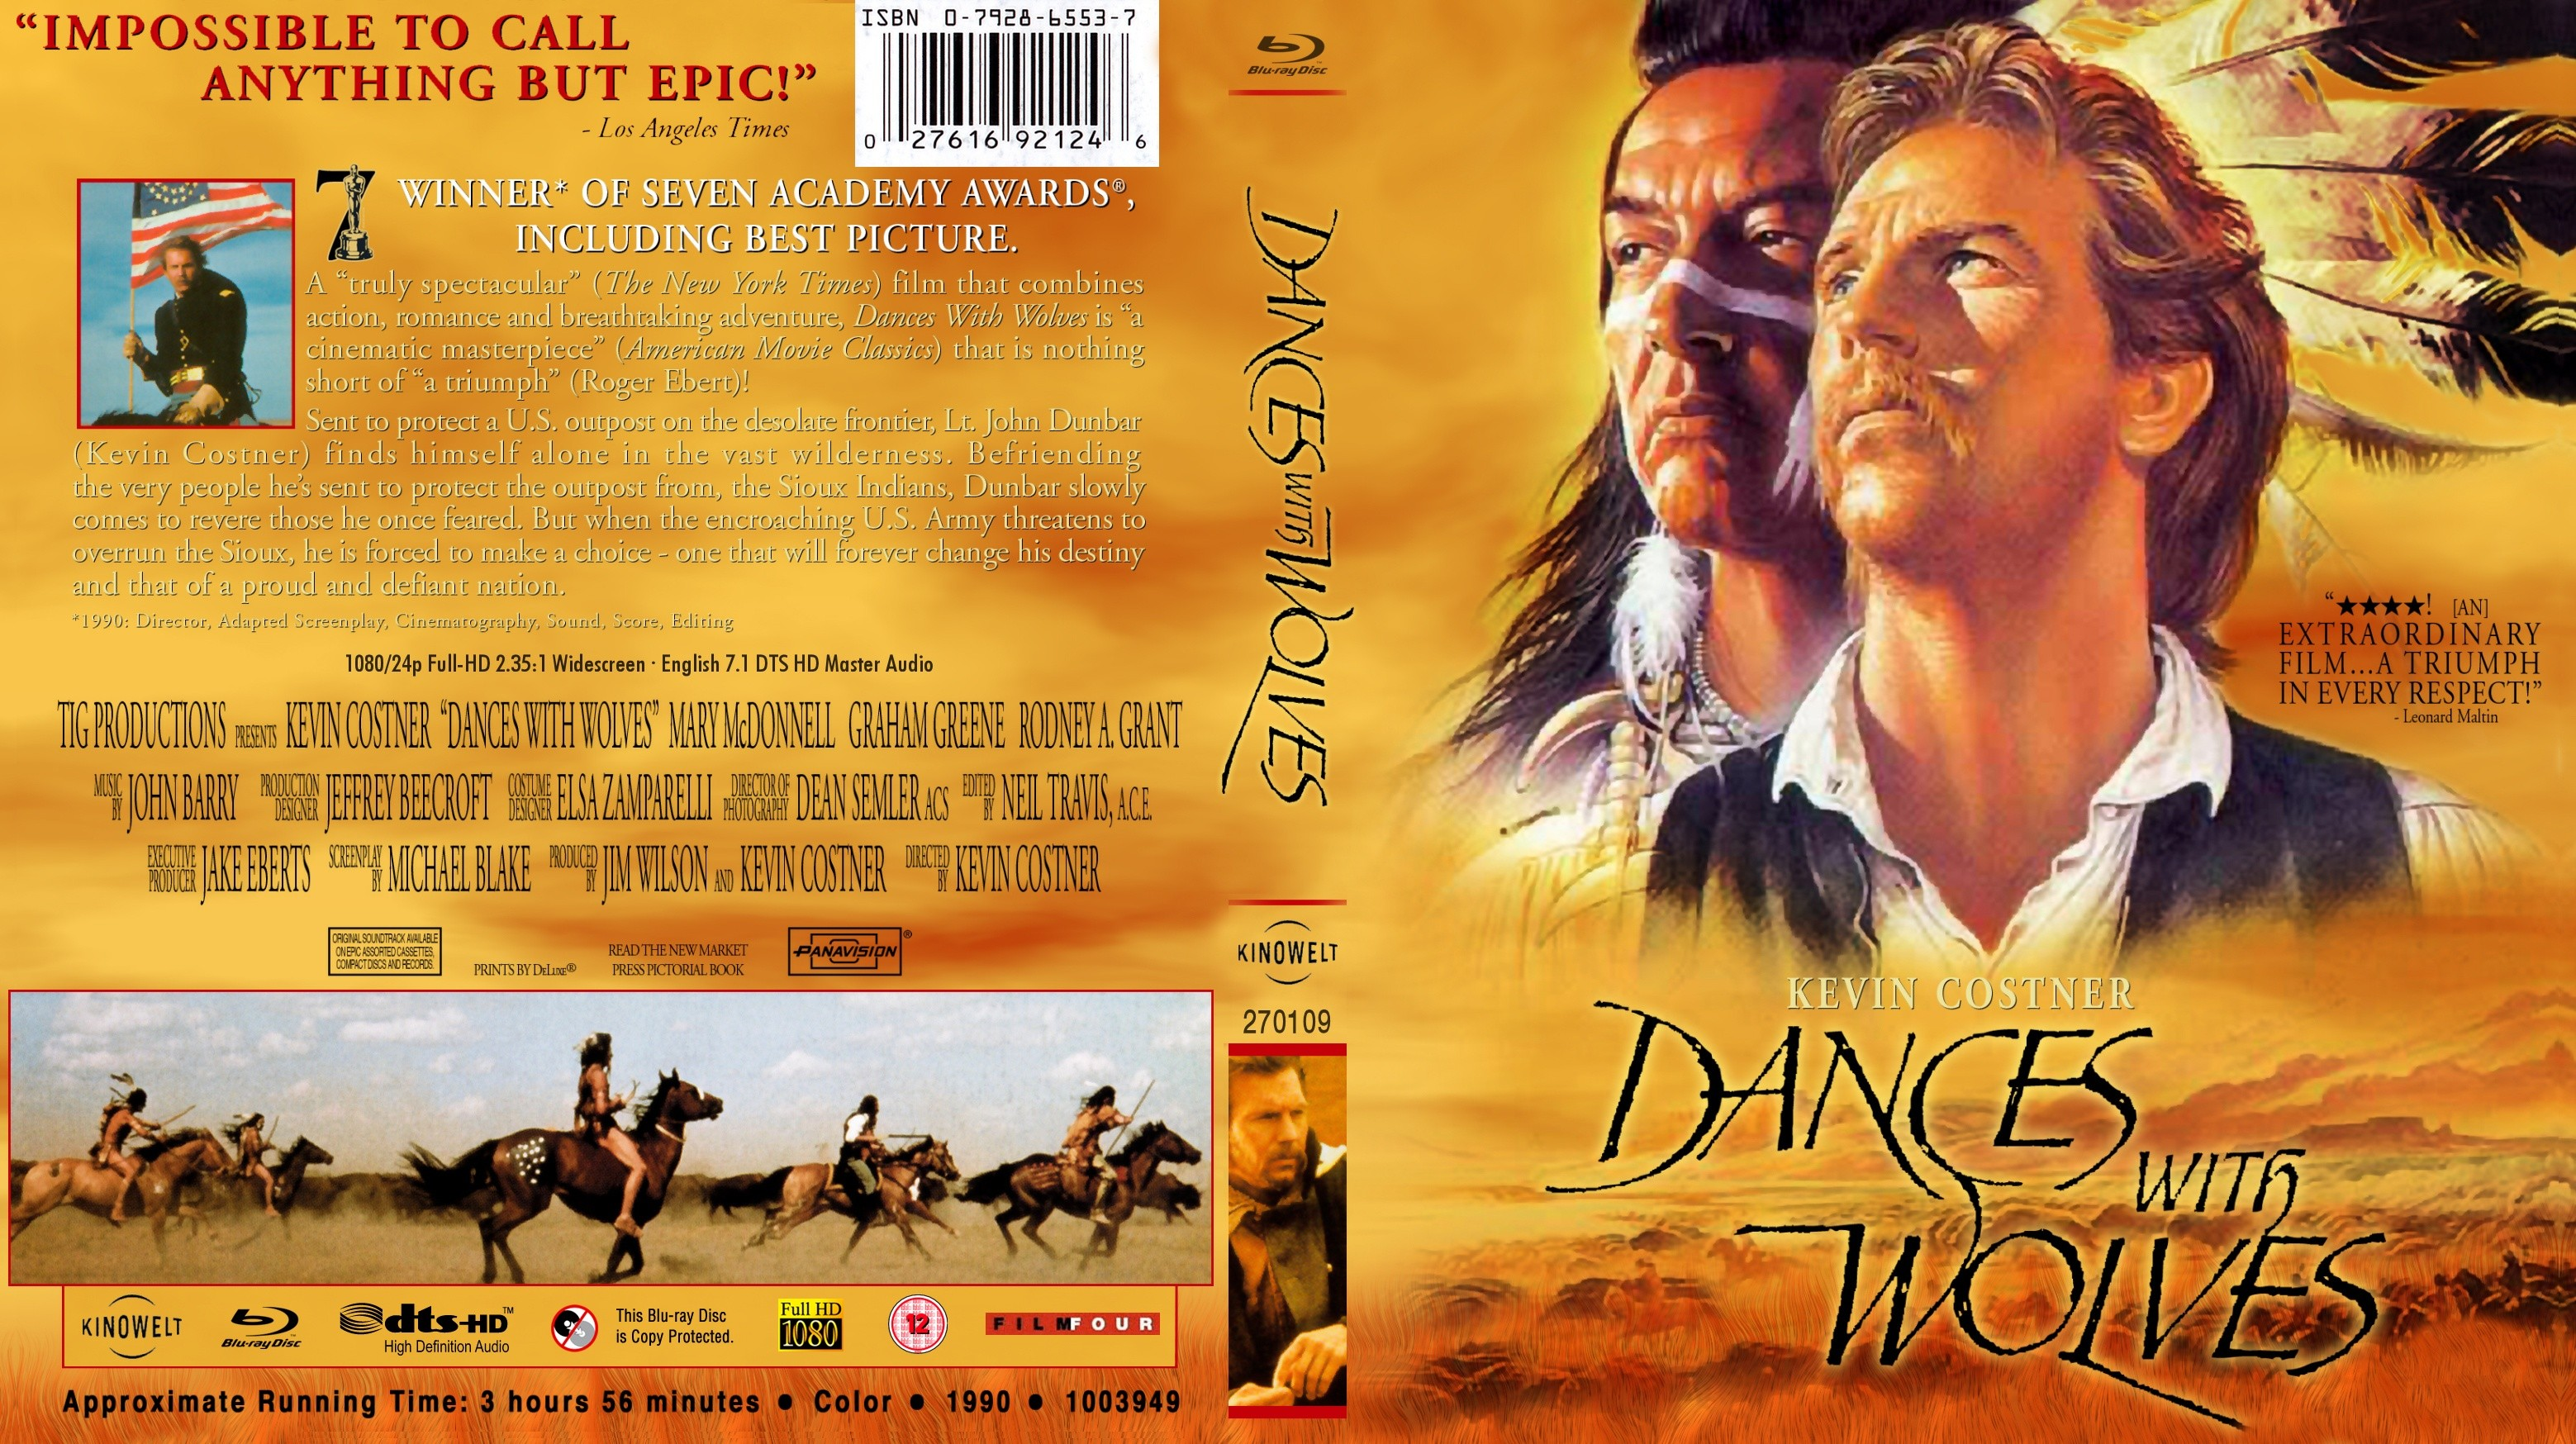 covers box sk dances with wolves imdb dl high quality dvd